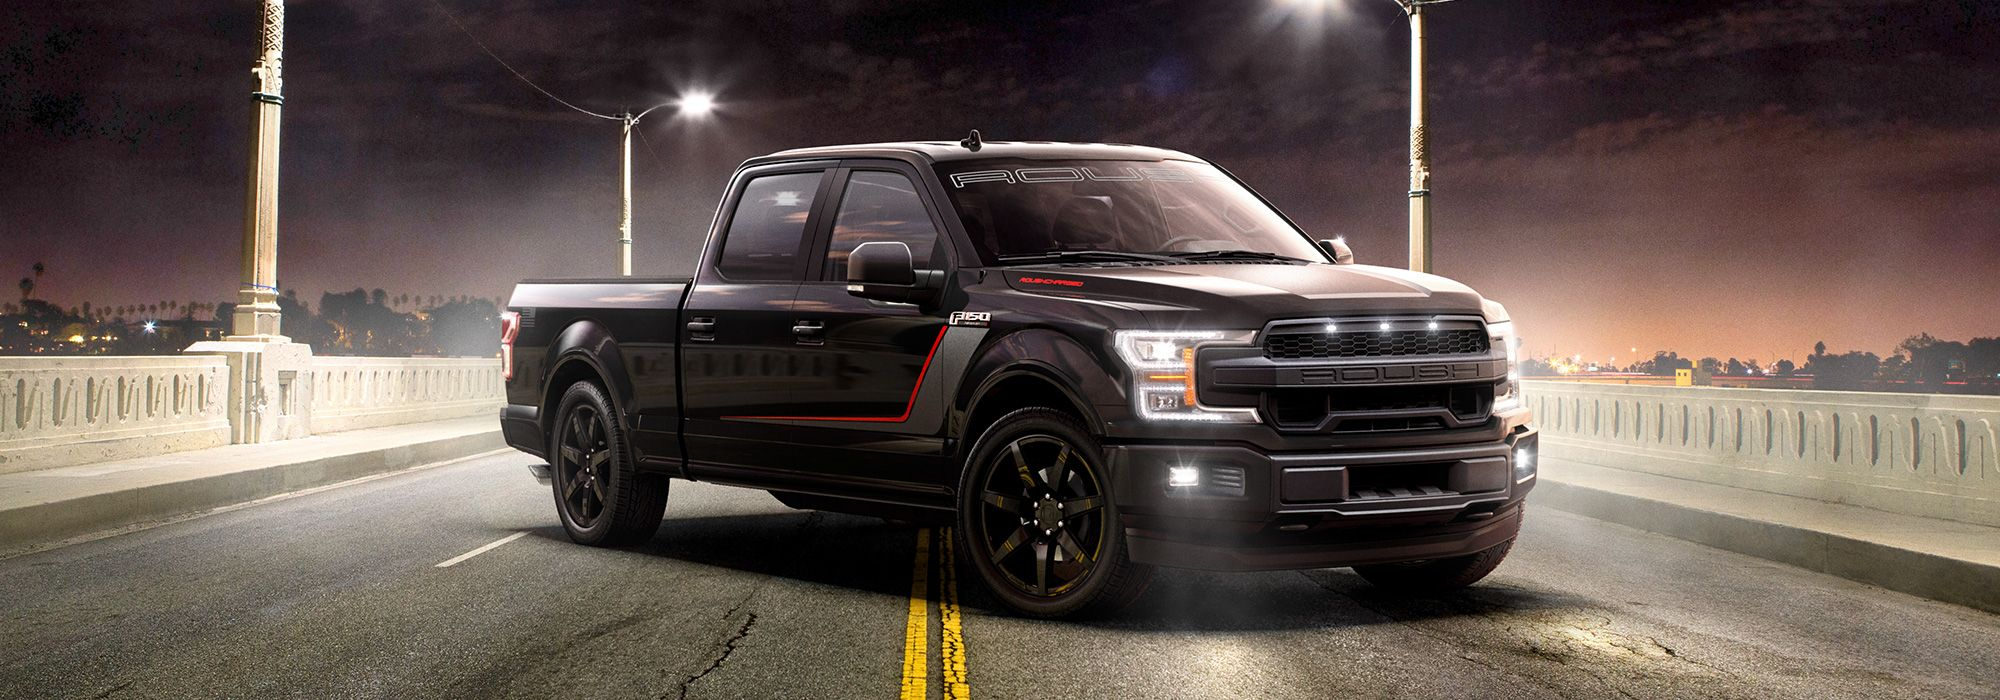 The 650-HP Roush Nitemare F-150 Can Hit 60 MPH In Under Four Seconds